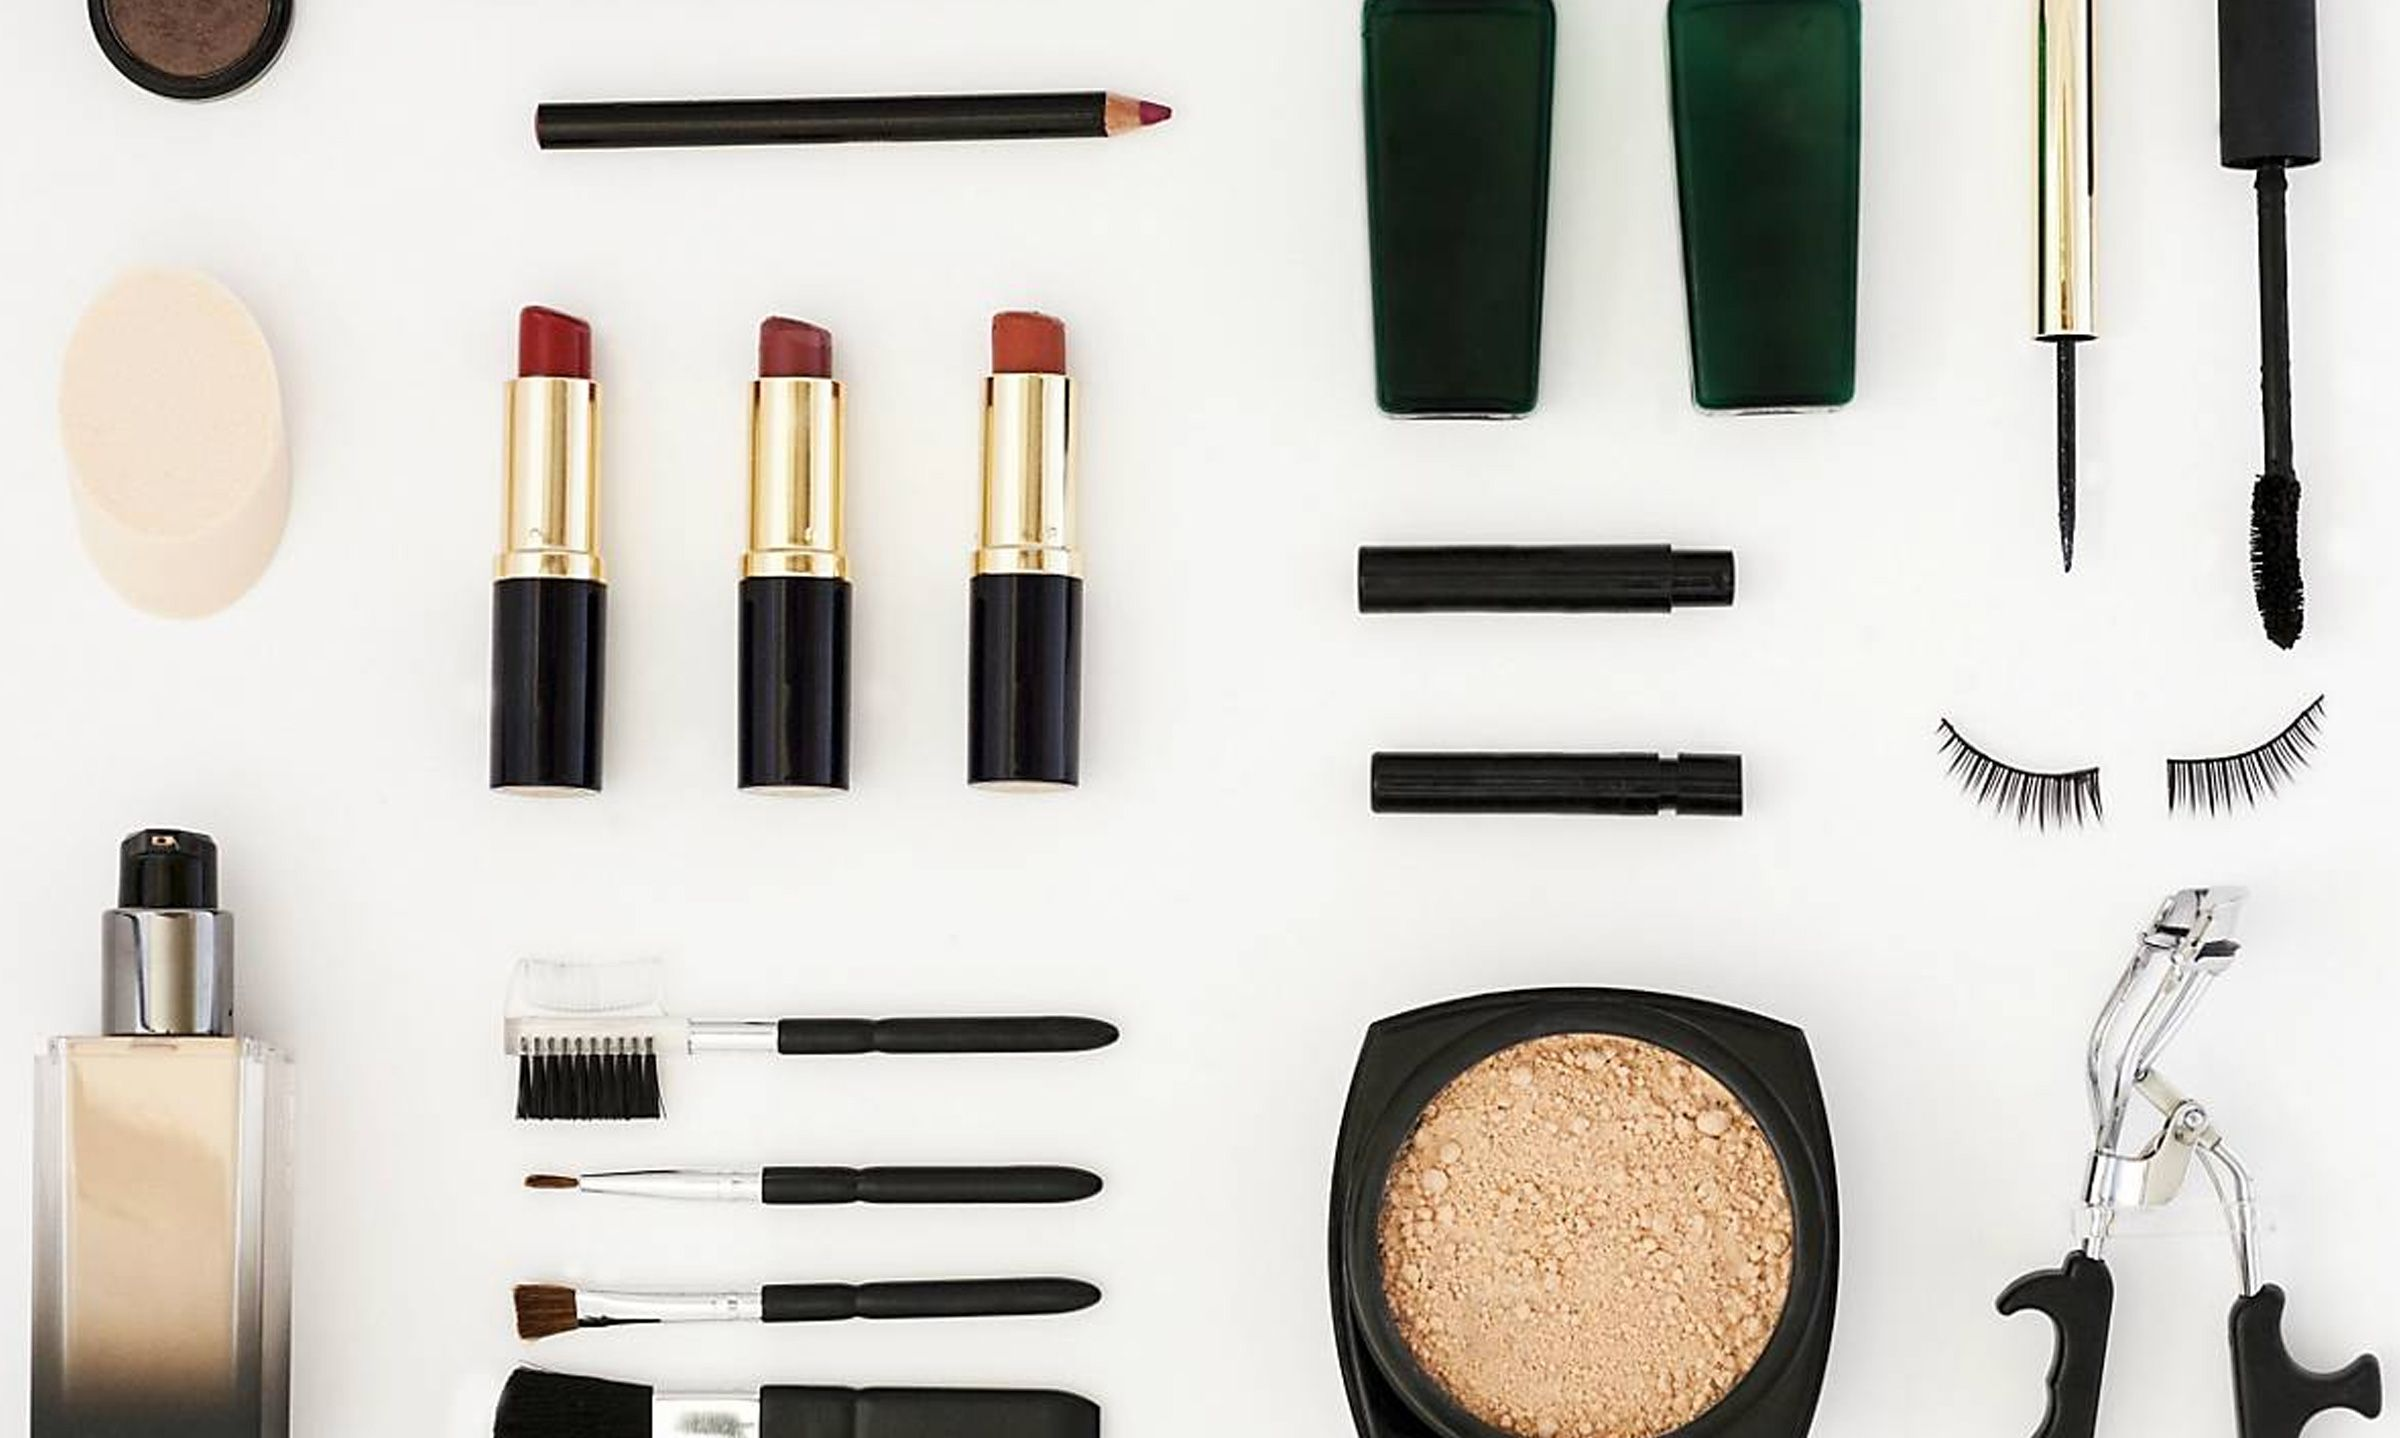 HOW TO MARIE KONDO YOUR MAKE-UP BAG